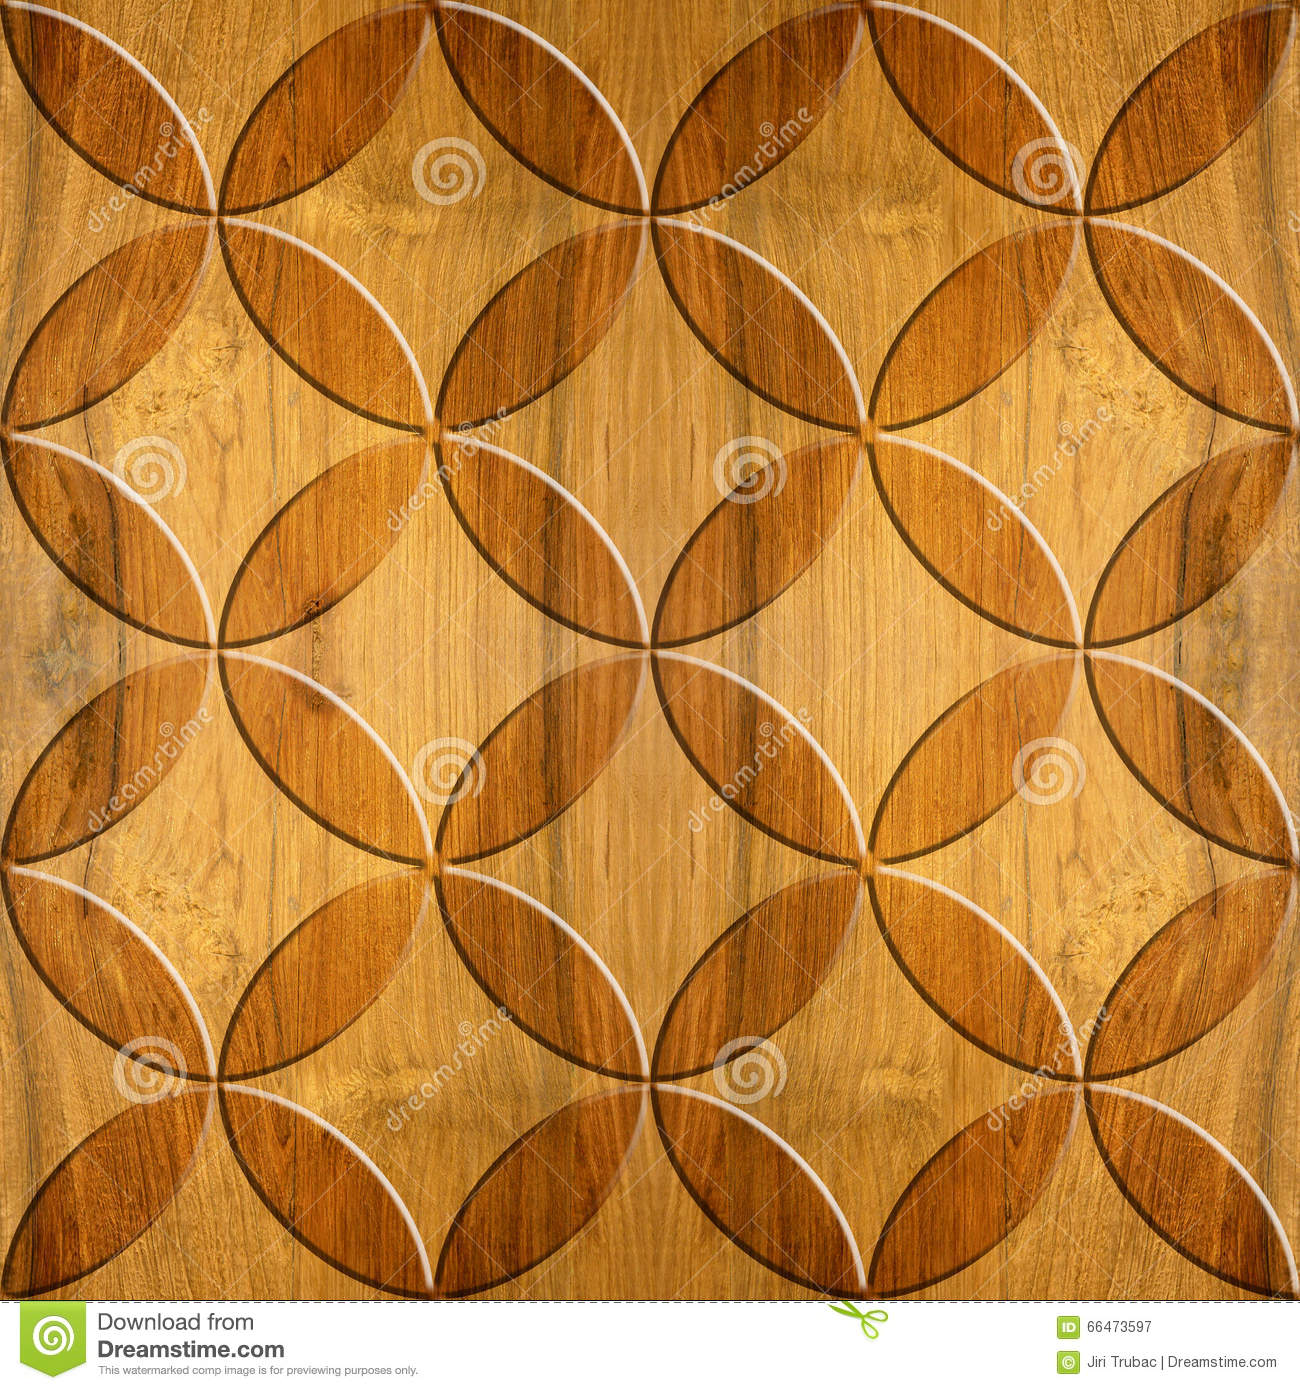 Abstract Background Decor Decoration Design Interior Material Paneling Pattern Seamless Texture